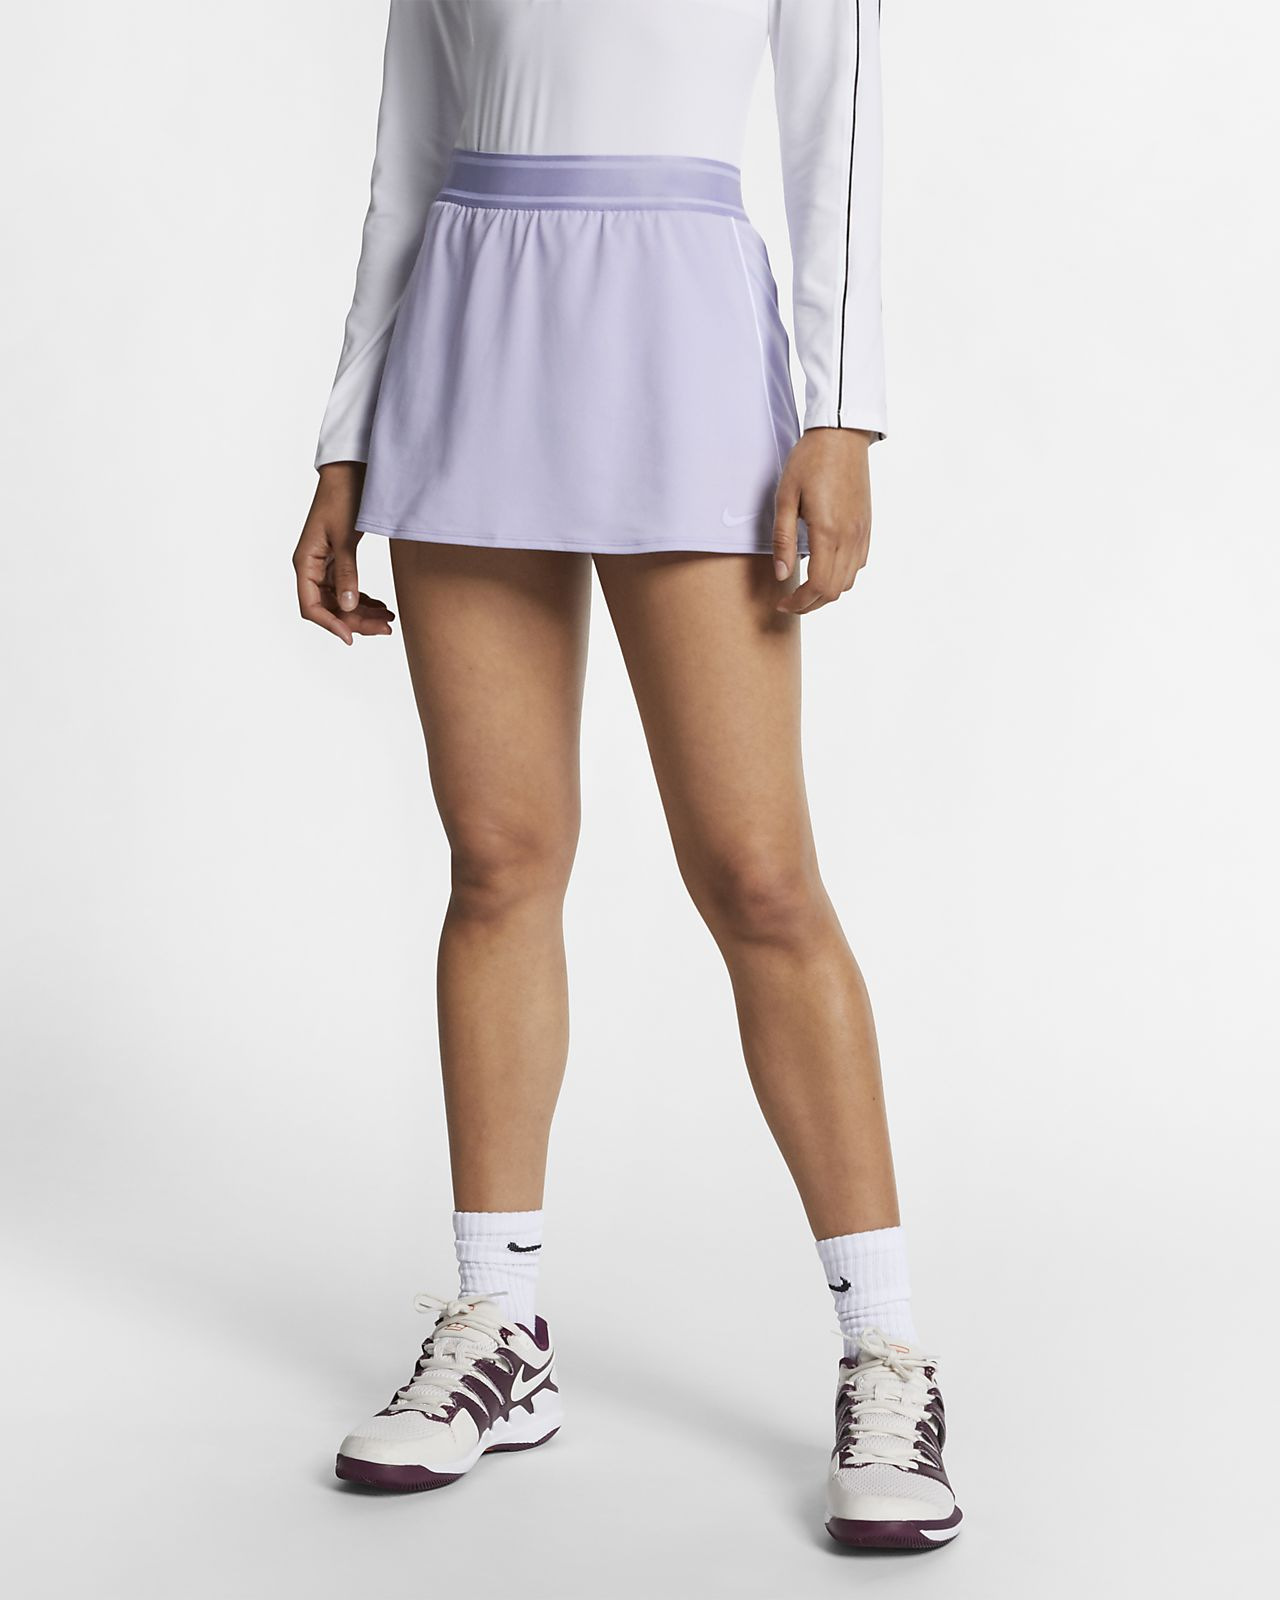 11a72c24df71 NikeCourt Dri-FIT Women s Tennis Skirt. Nike.com